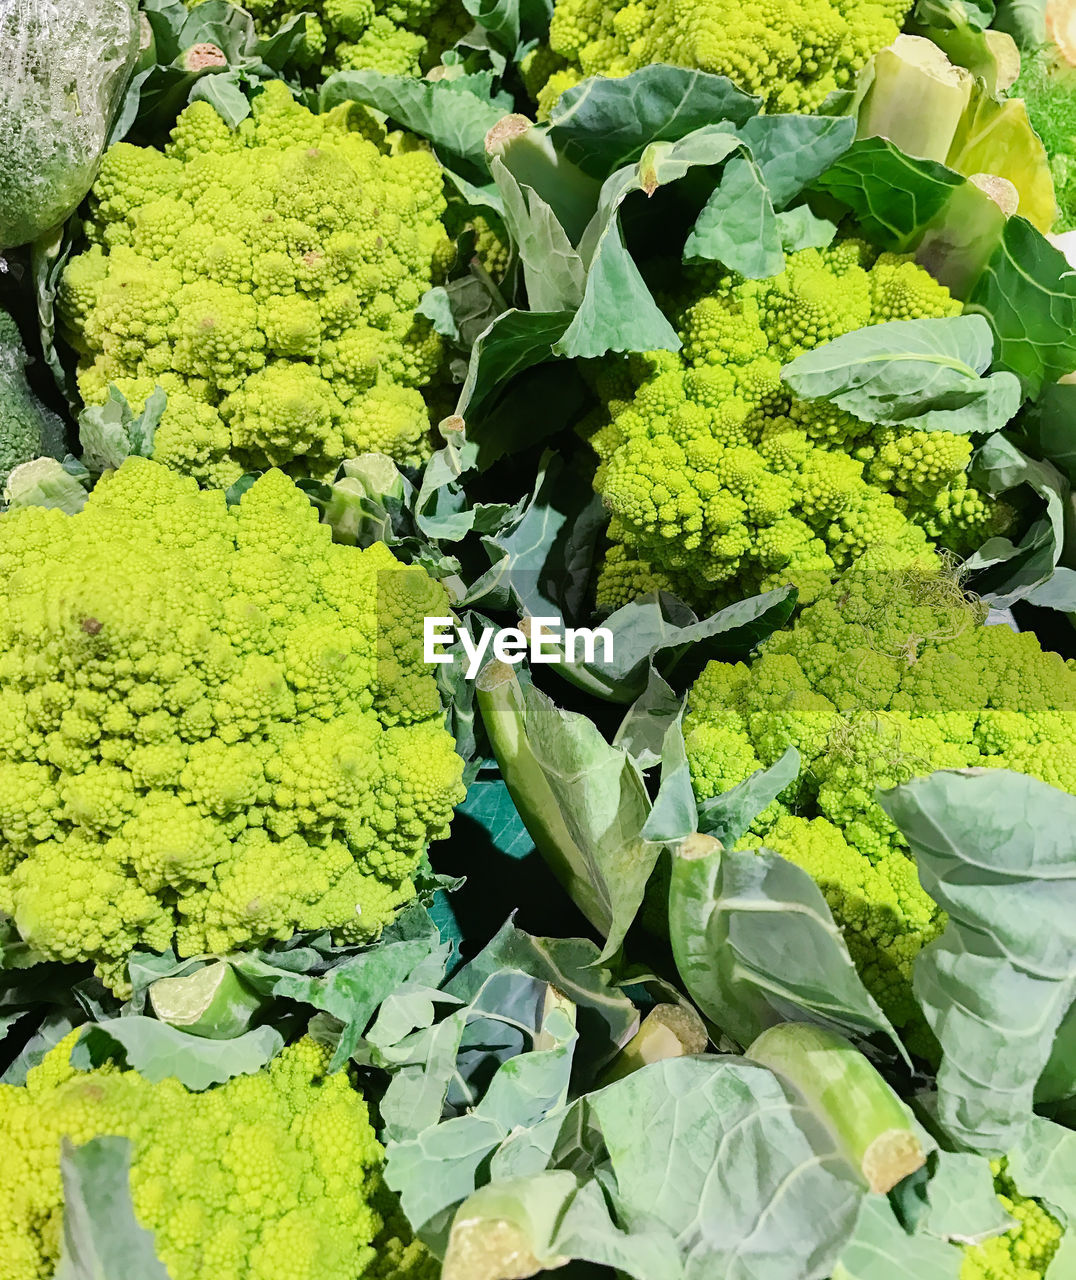 vegetable, green color, healthy eating, food, food and drink, abundance, freshness, raw food, no people, day, growth, full frame, variation, leaf, agriculture, cauliflower, backgrounds, plant, outdoors, nature, beauty in nature, close-up